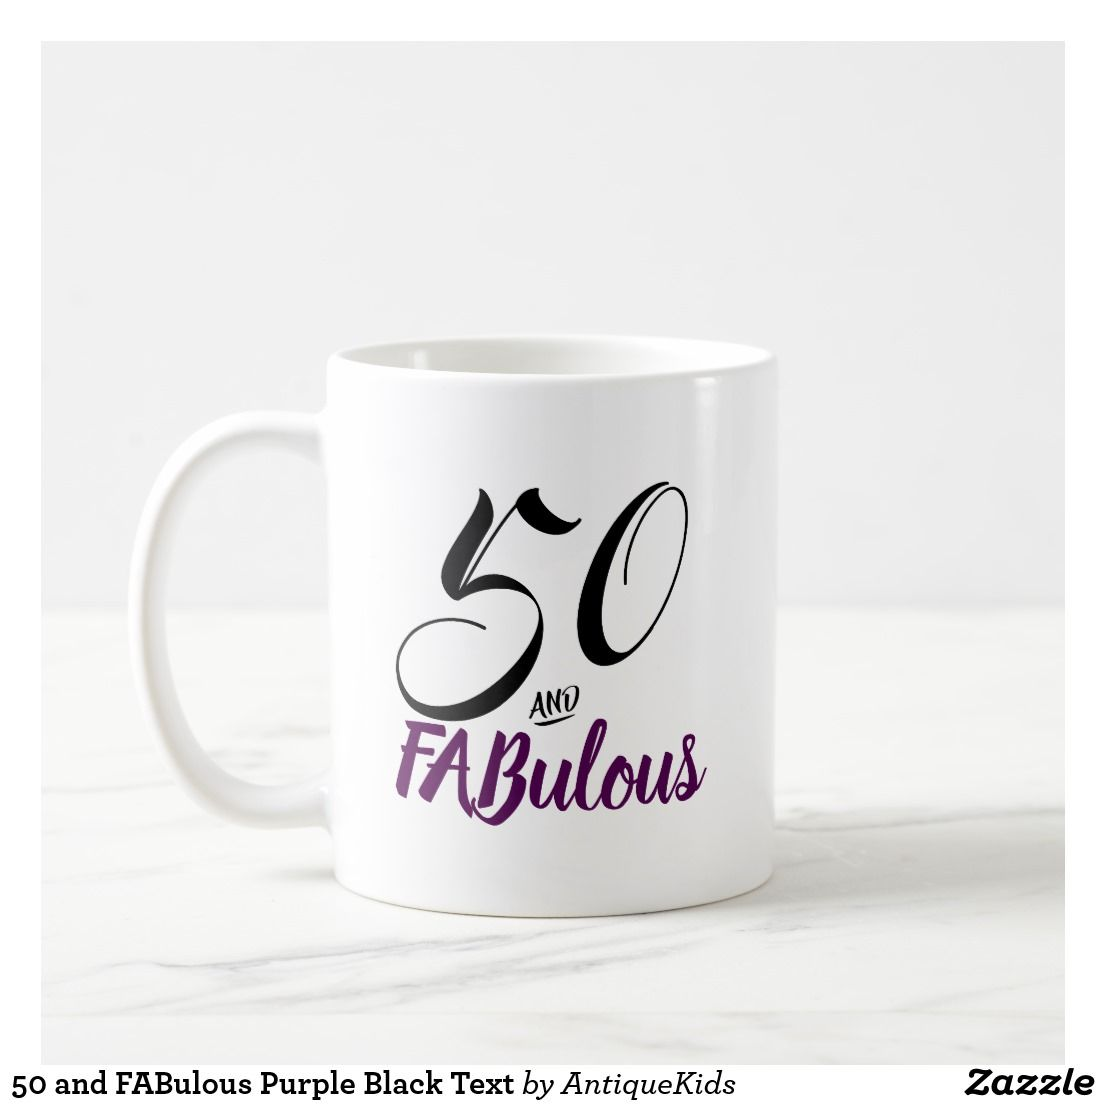 50 And Fabulous Text: 50 And FABulous Purple Black Text Coffee Mug